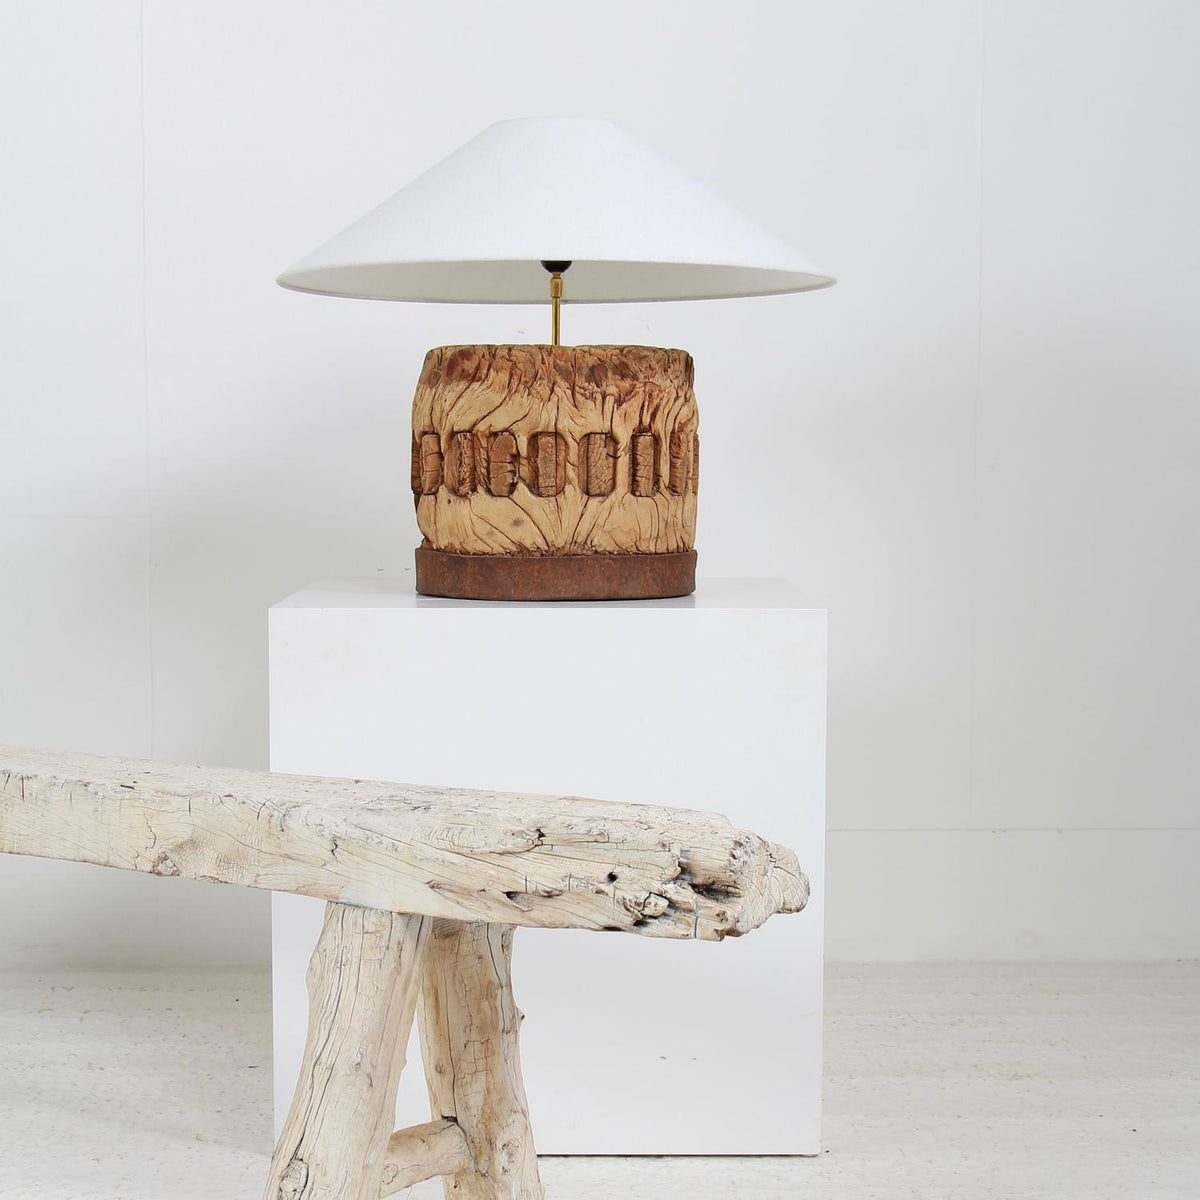 MAGNIFICENT LAMP FASHIONED FROM AN ANTIQUE ARCHITECTURAL WOODEN FRAGMENT